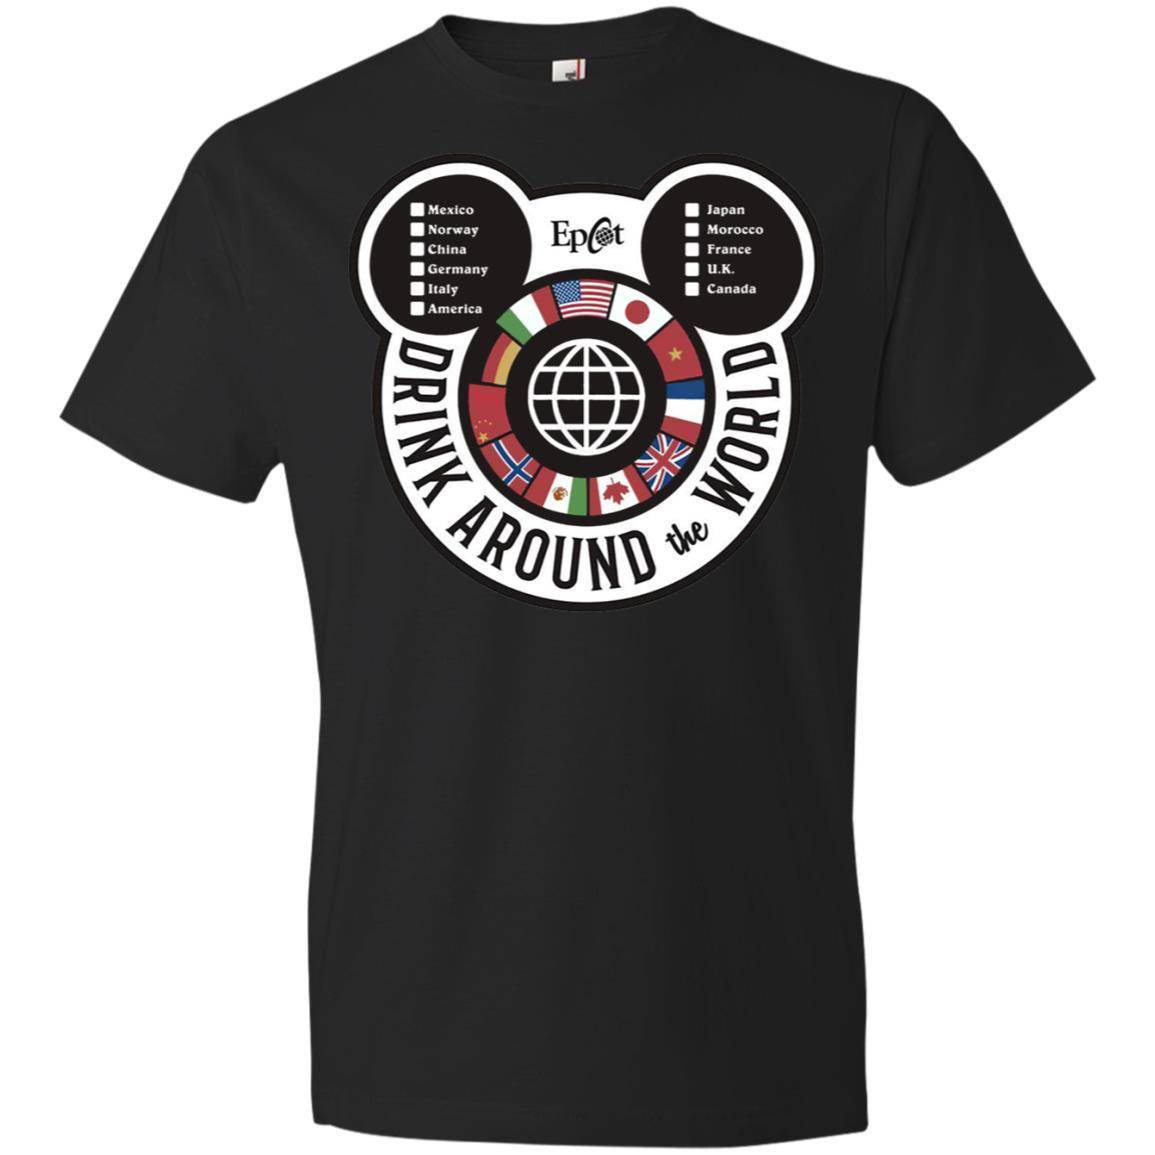 Drink Around the World - EPCOT Checklist - Anvil Lightweight T-Shirt Black / 3XL